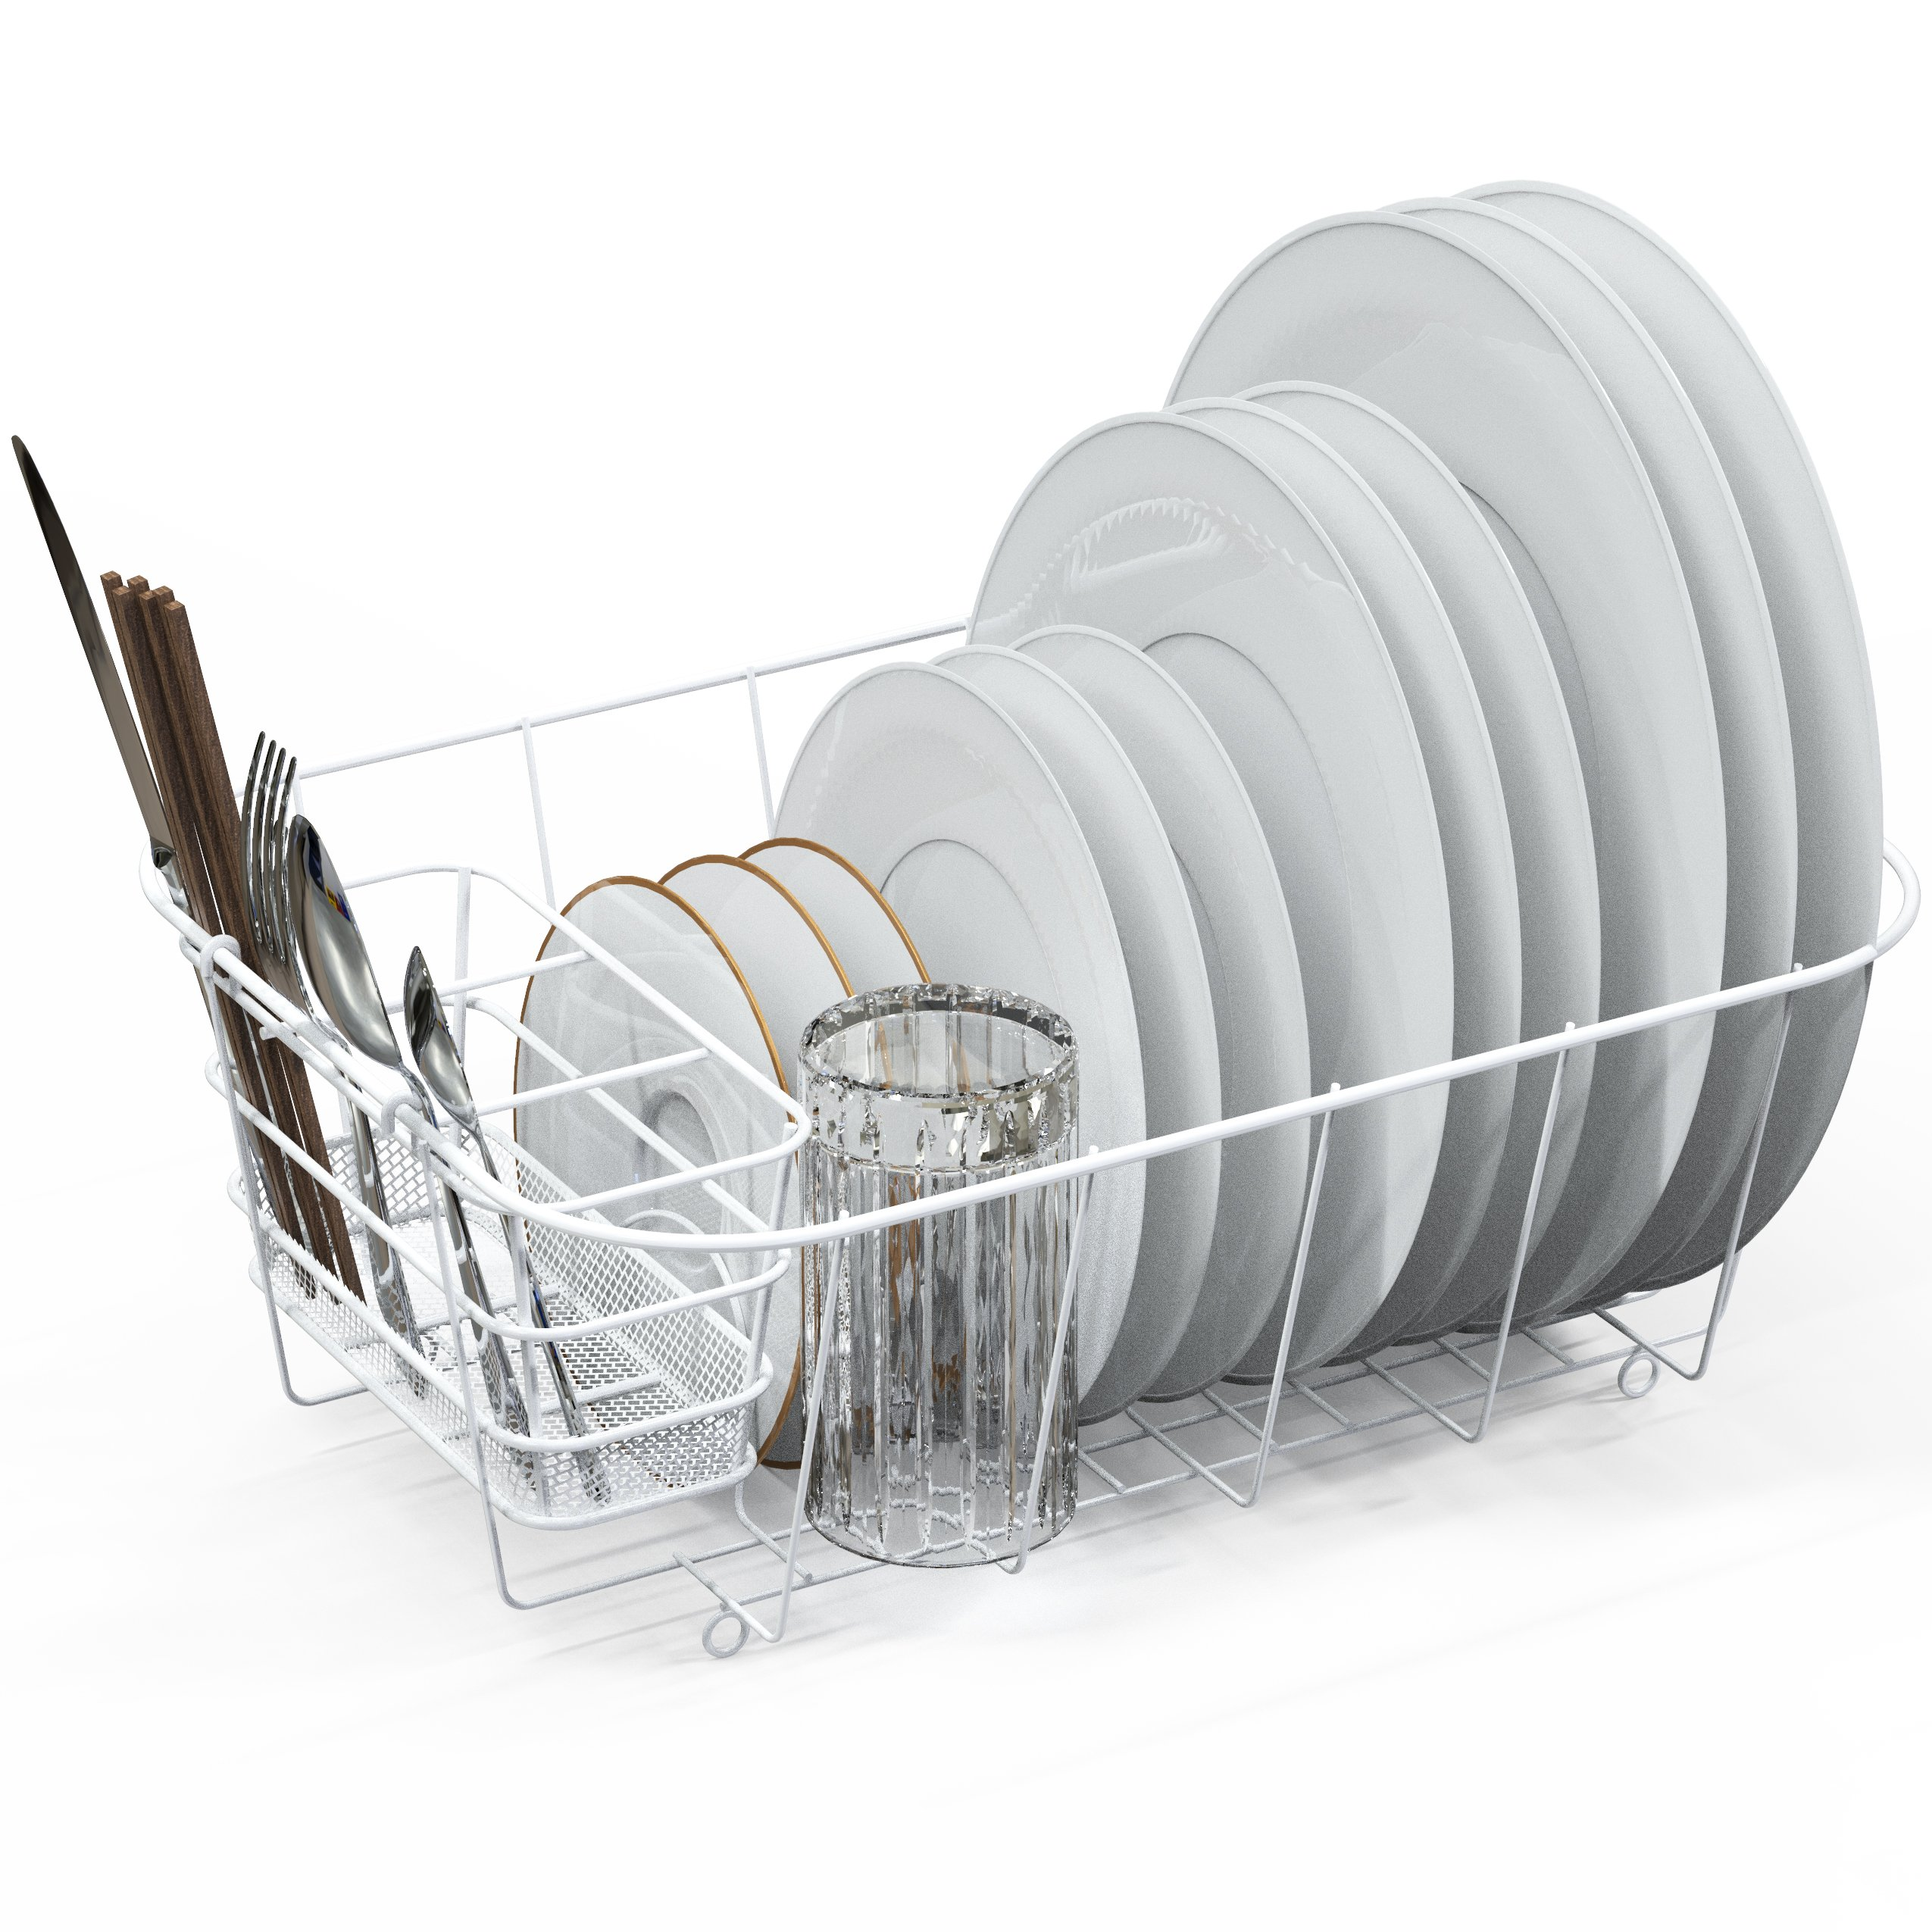 Dish Drying Rack Drainer Basket w/Utensil Caddy, White by Simple Houseware